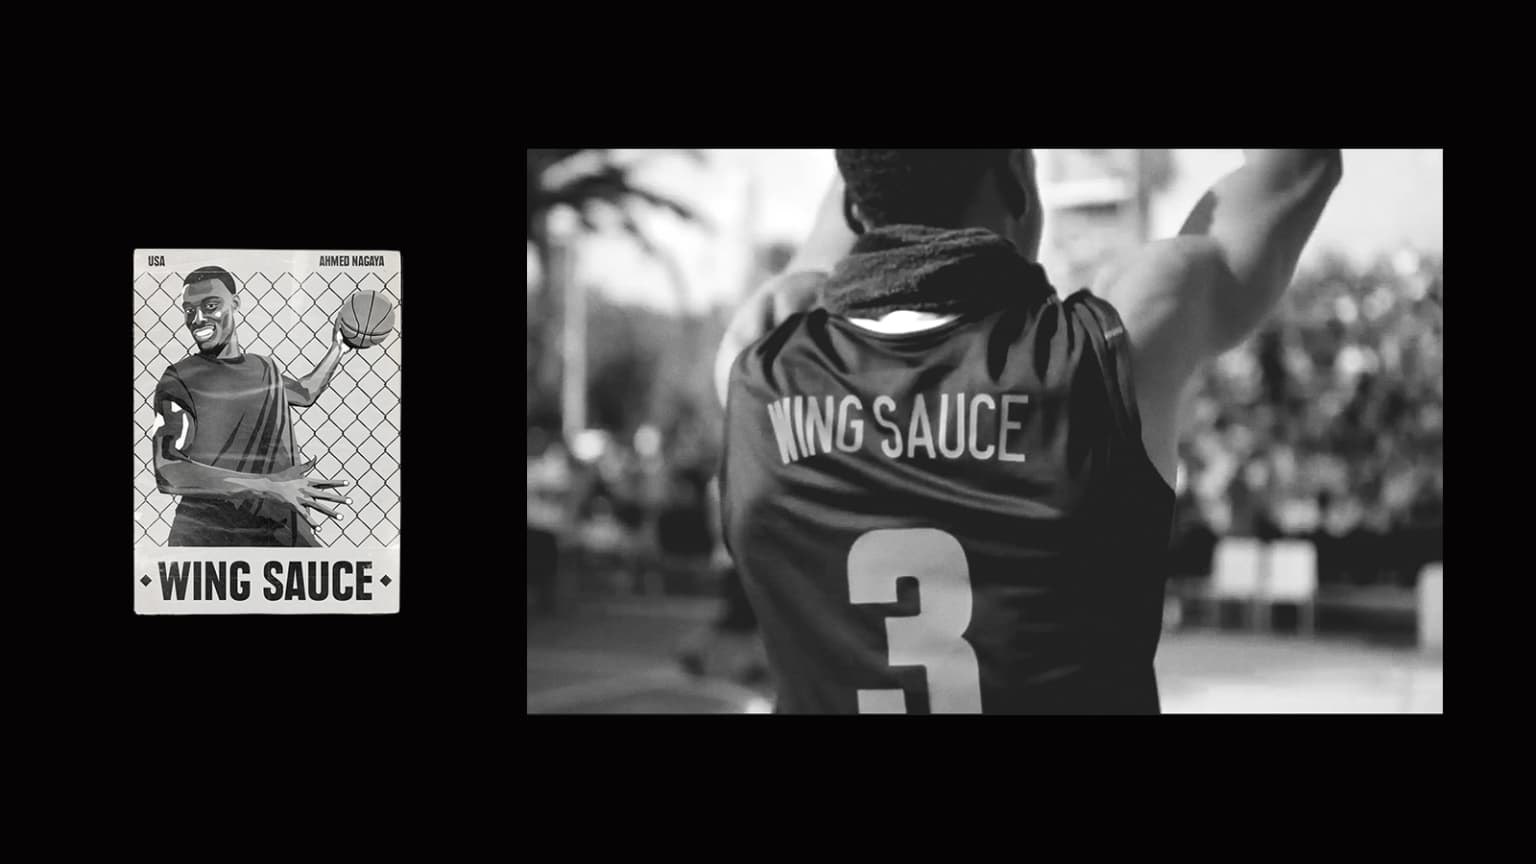 Search For The Baddest by Nike